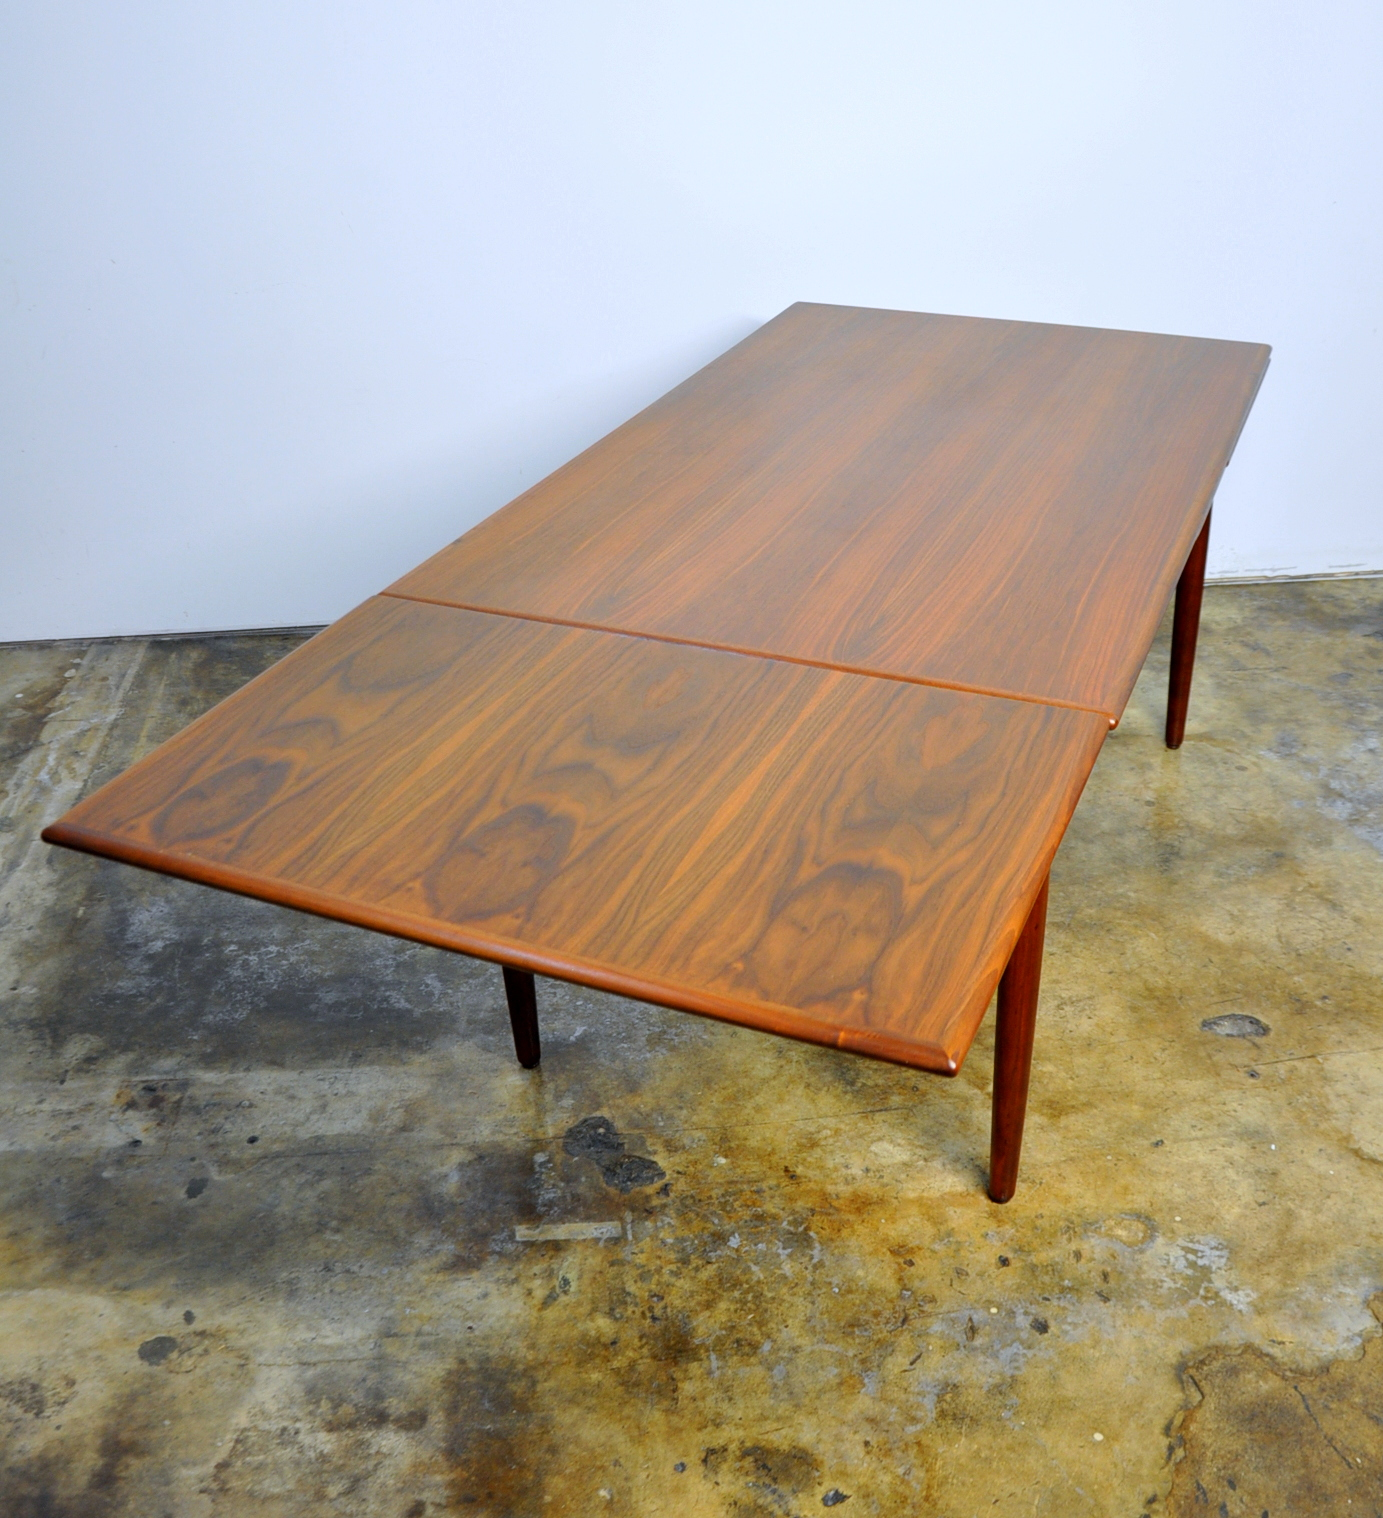 Expandable Dining Room Tables Modern: SELECT MODERN: Danish Modern Teak Expandable Dining Room Table